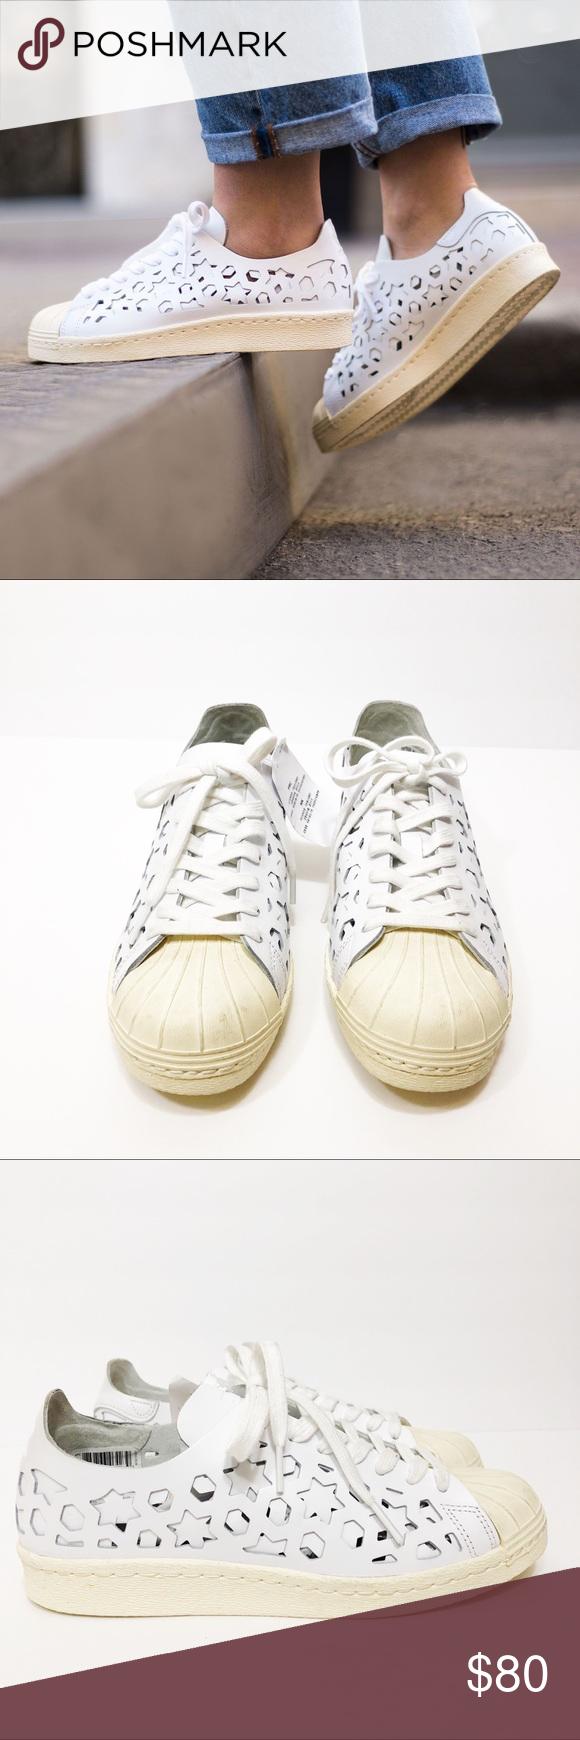 Adidas superstar 80s, Shoes sneakers adidas